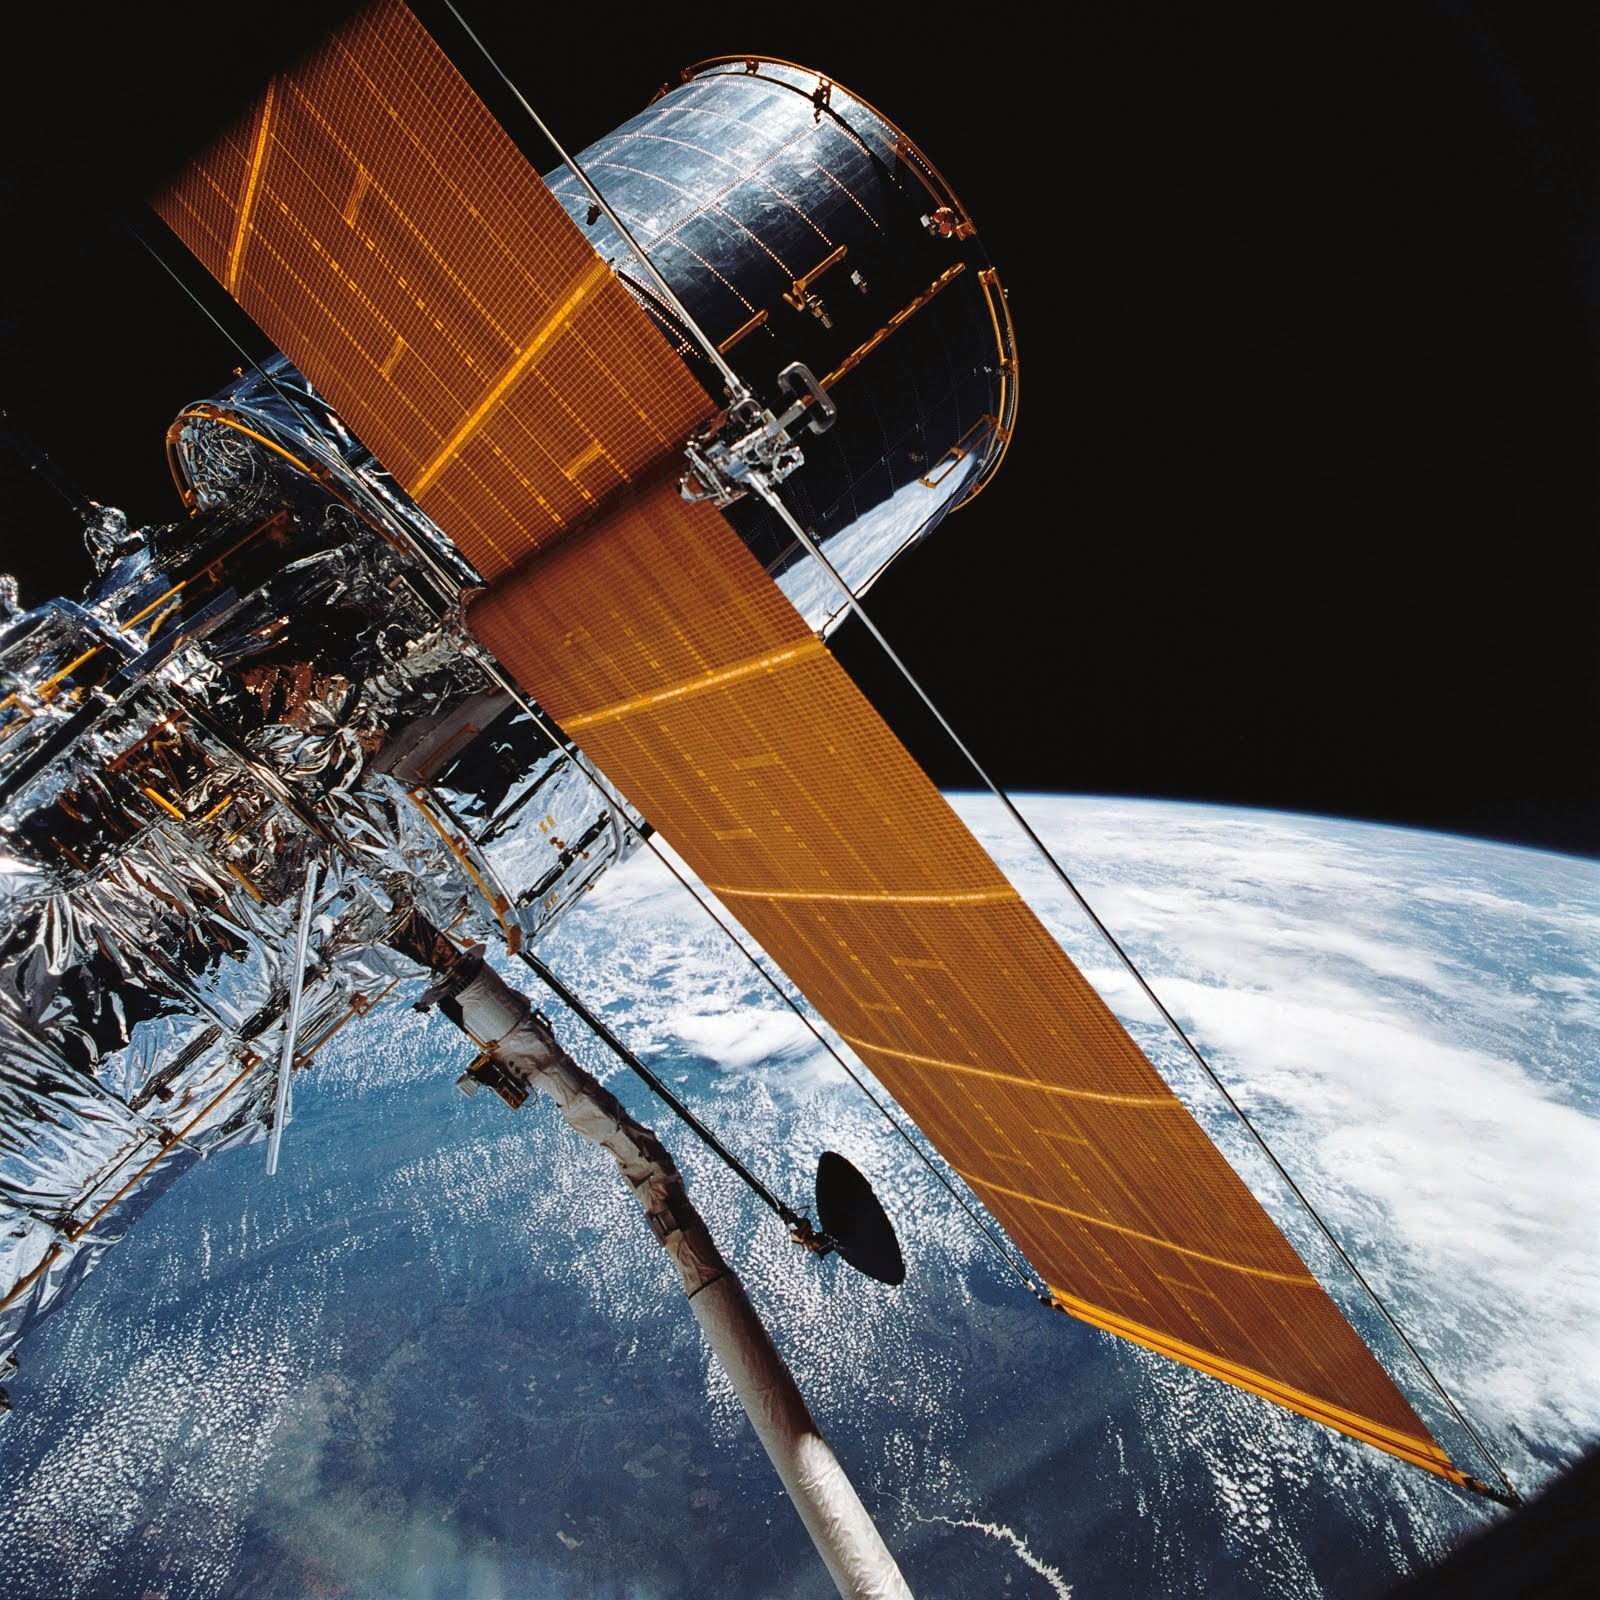 WHEN HUBBLE SPACE TELESCOPE WAS YOUNG